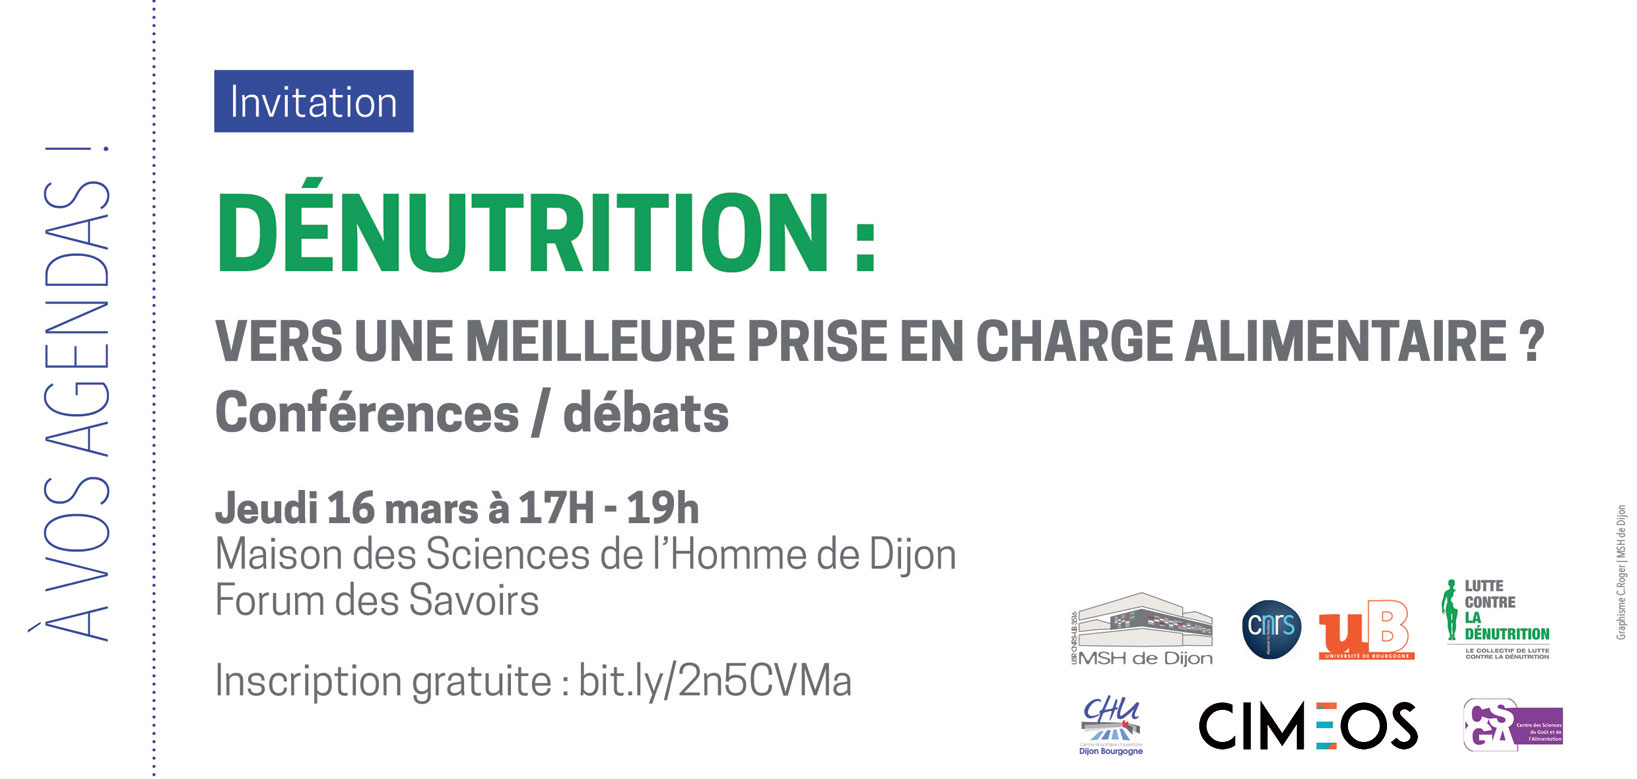 Save the date denutrition 210x100 mars17 2